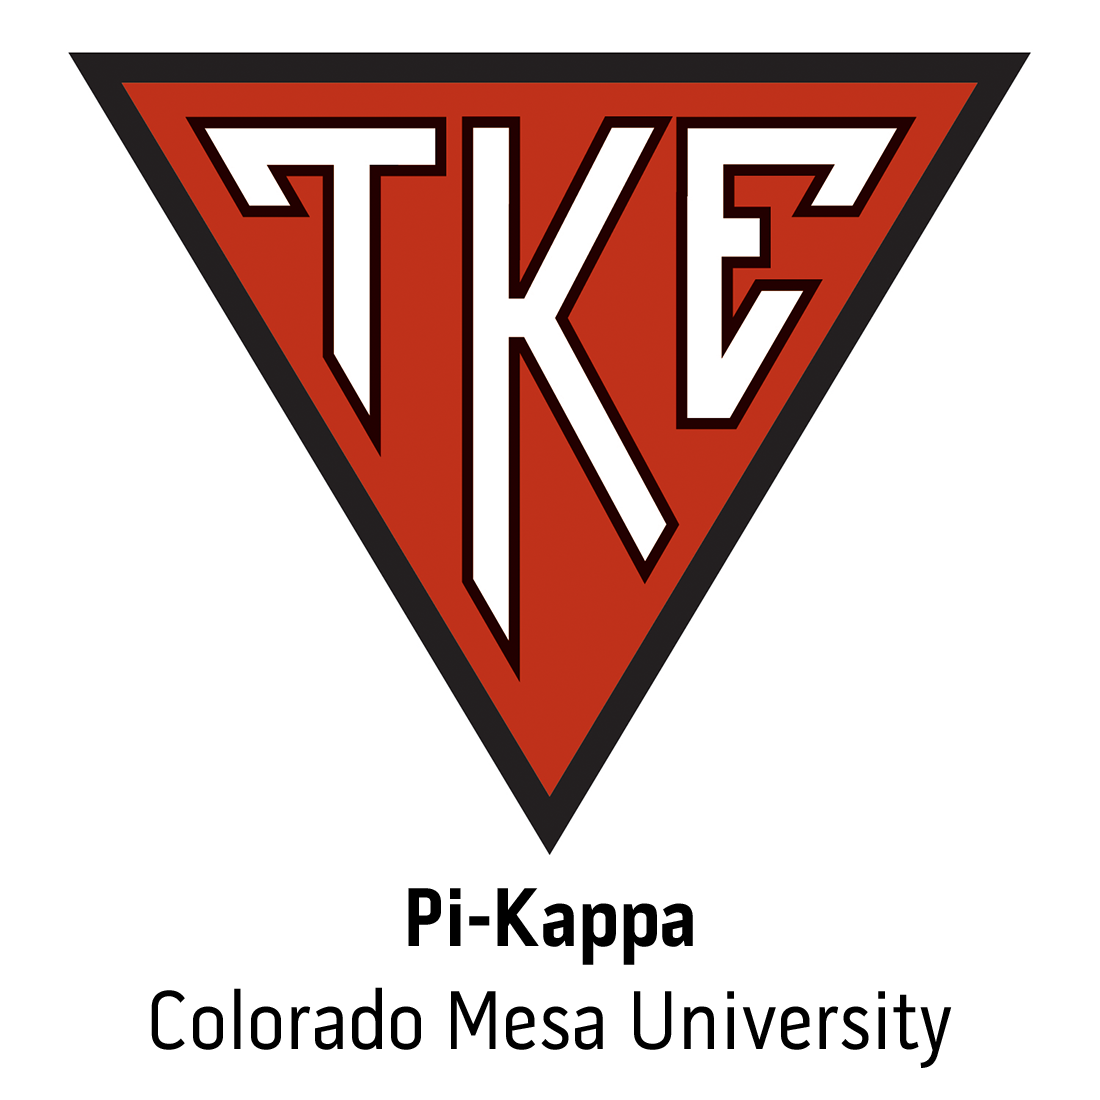 Pi-Kappa Chapter at Colorado Mesa University